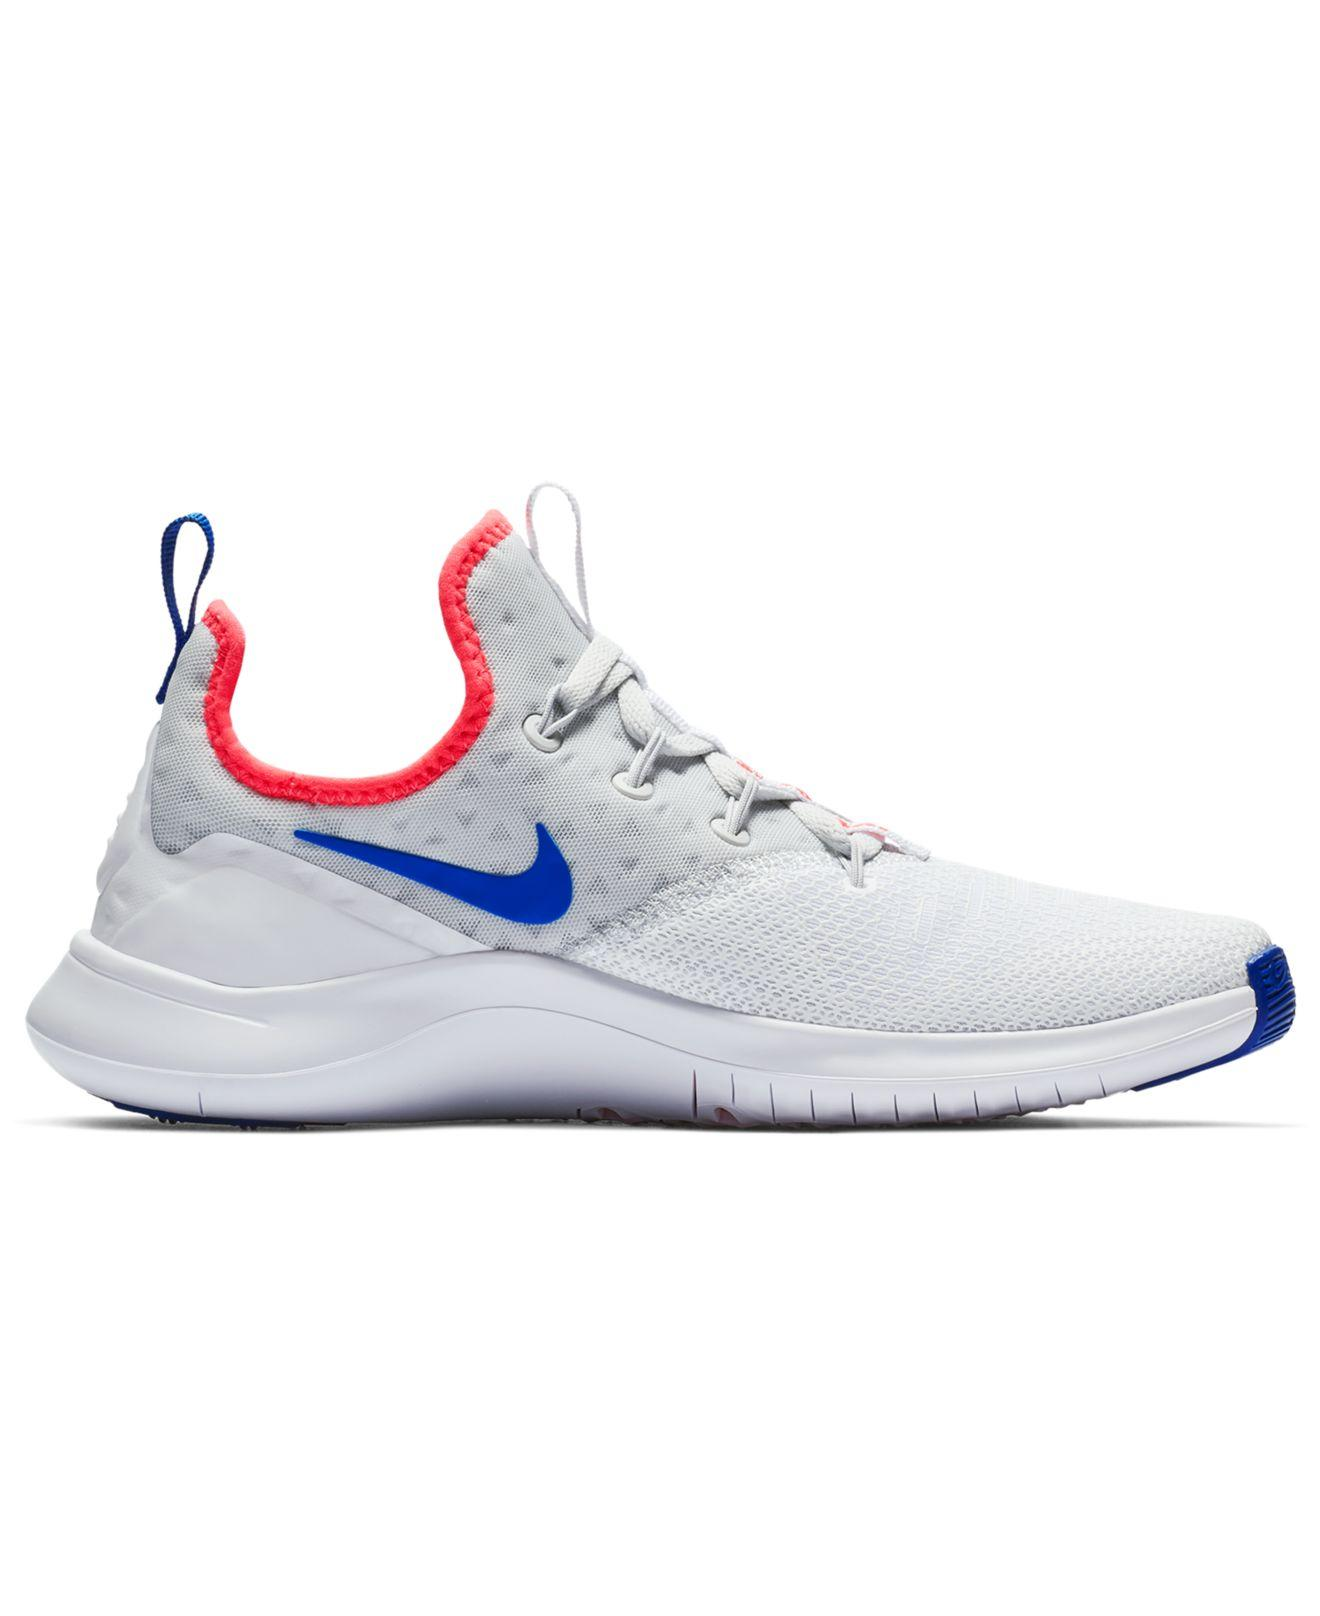 Lyst - Nike Free Tr 8 Training Sneakers From Finish Line in Blue 8a8cfa19b